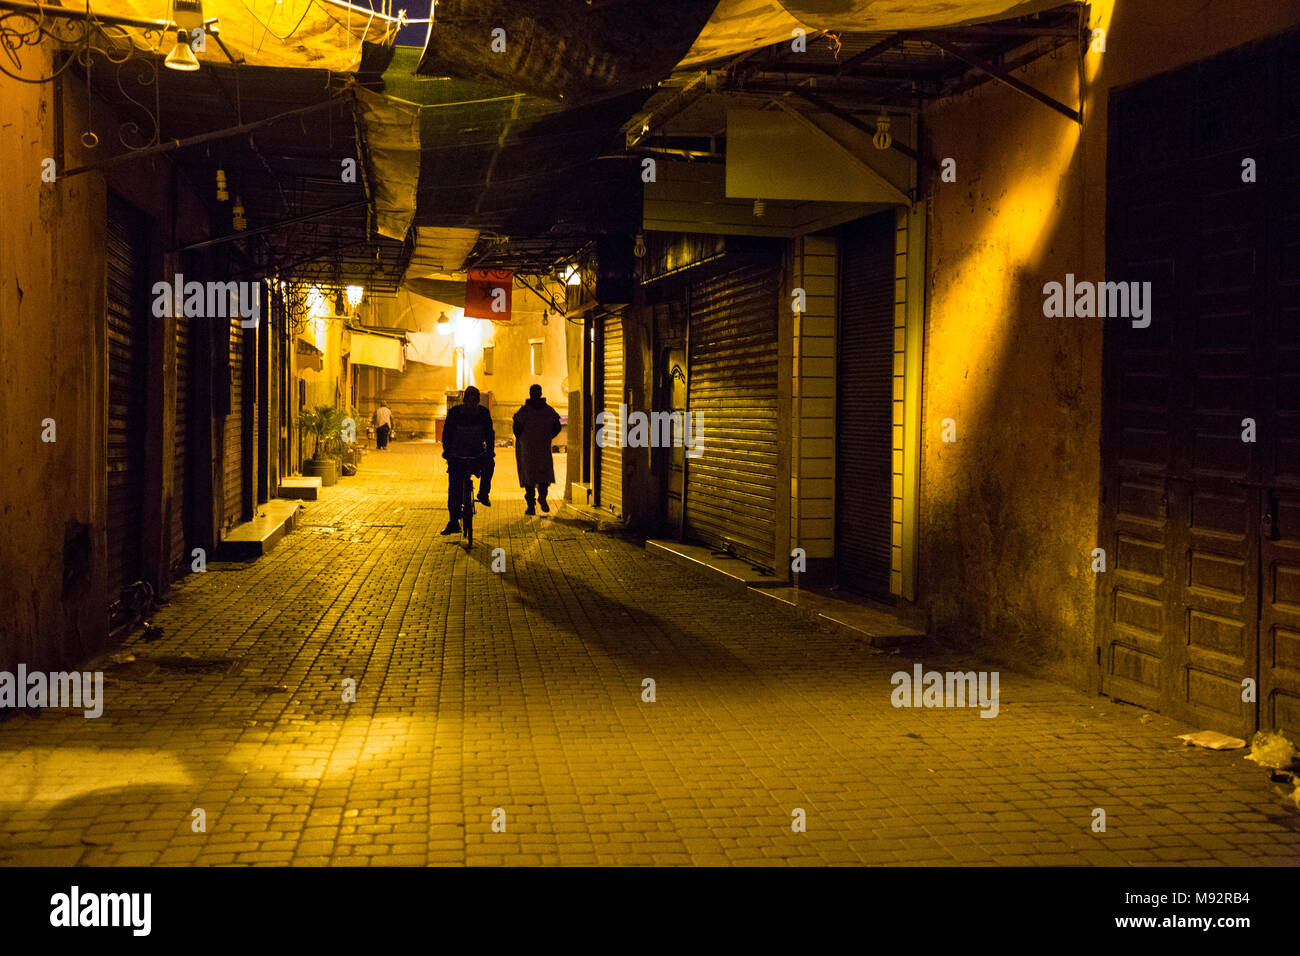 A dark mysterious alley in the Medina in Marrakesh, Morocco Stock Photo